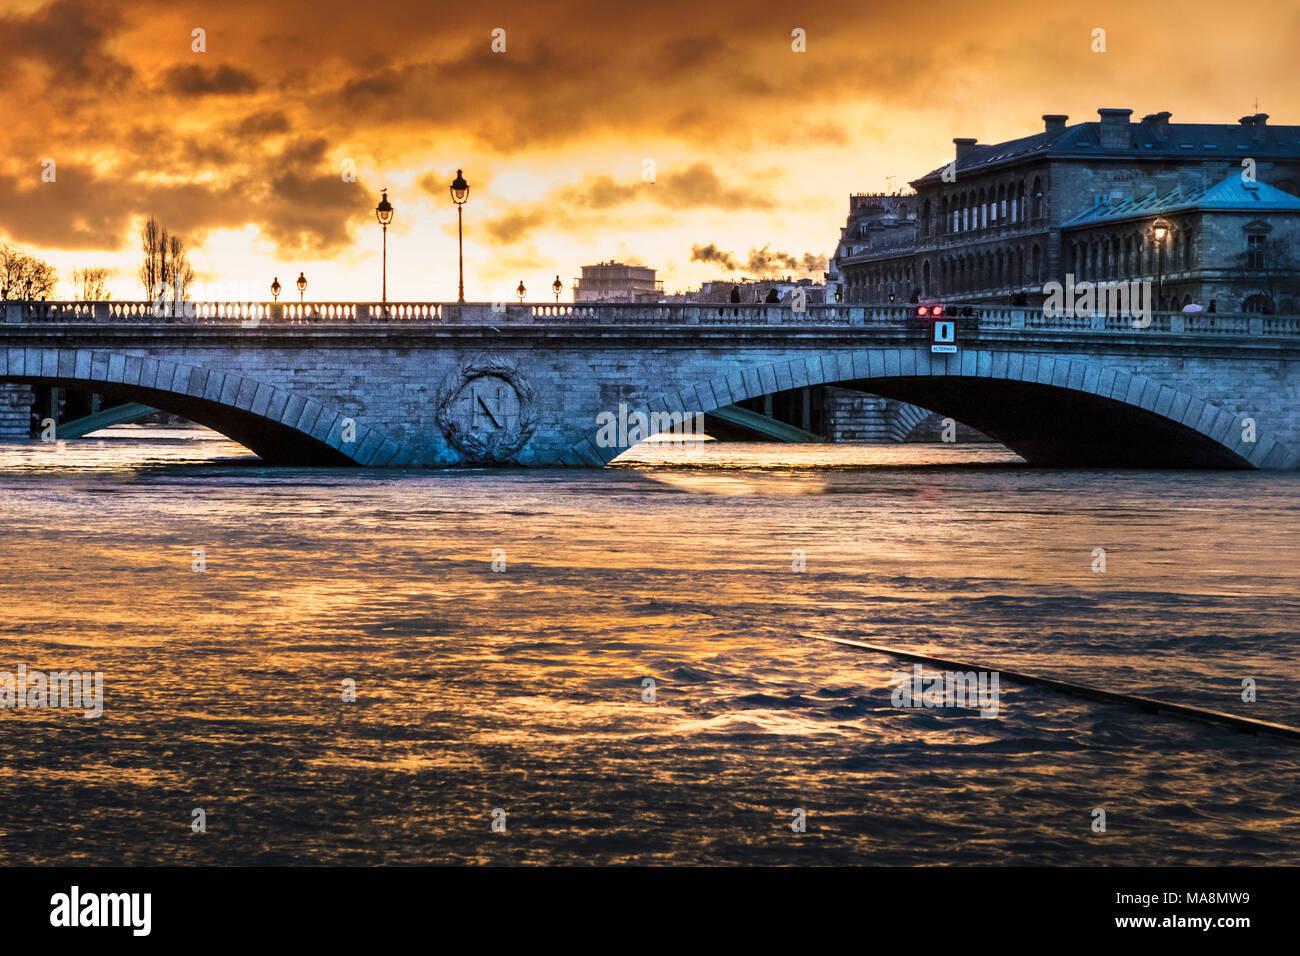 Pont au Change at sunrise with reflection of sky on the swollen Seine surging over submerged road during the Paris flood of January 2018 - Stock Image